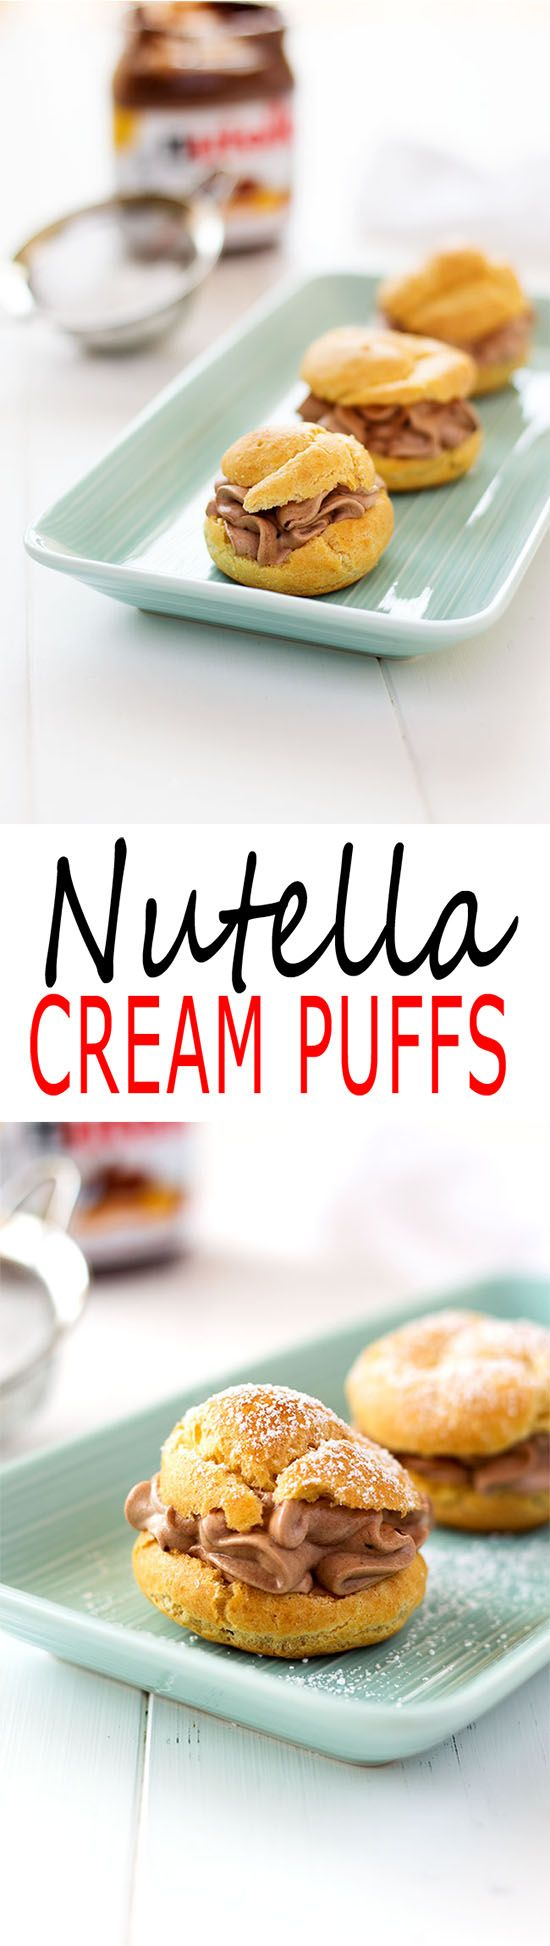 Nutella Cream Puffs: crisp choux pastry shells filled with heavenly Nutella whipped cream. Easy yet elegant dessert recipe.